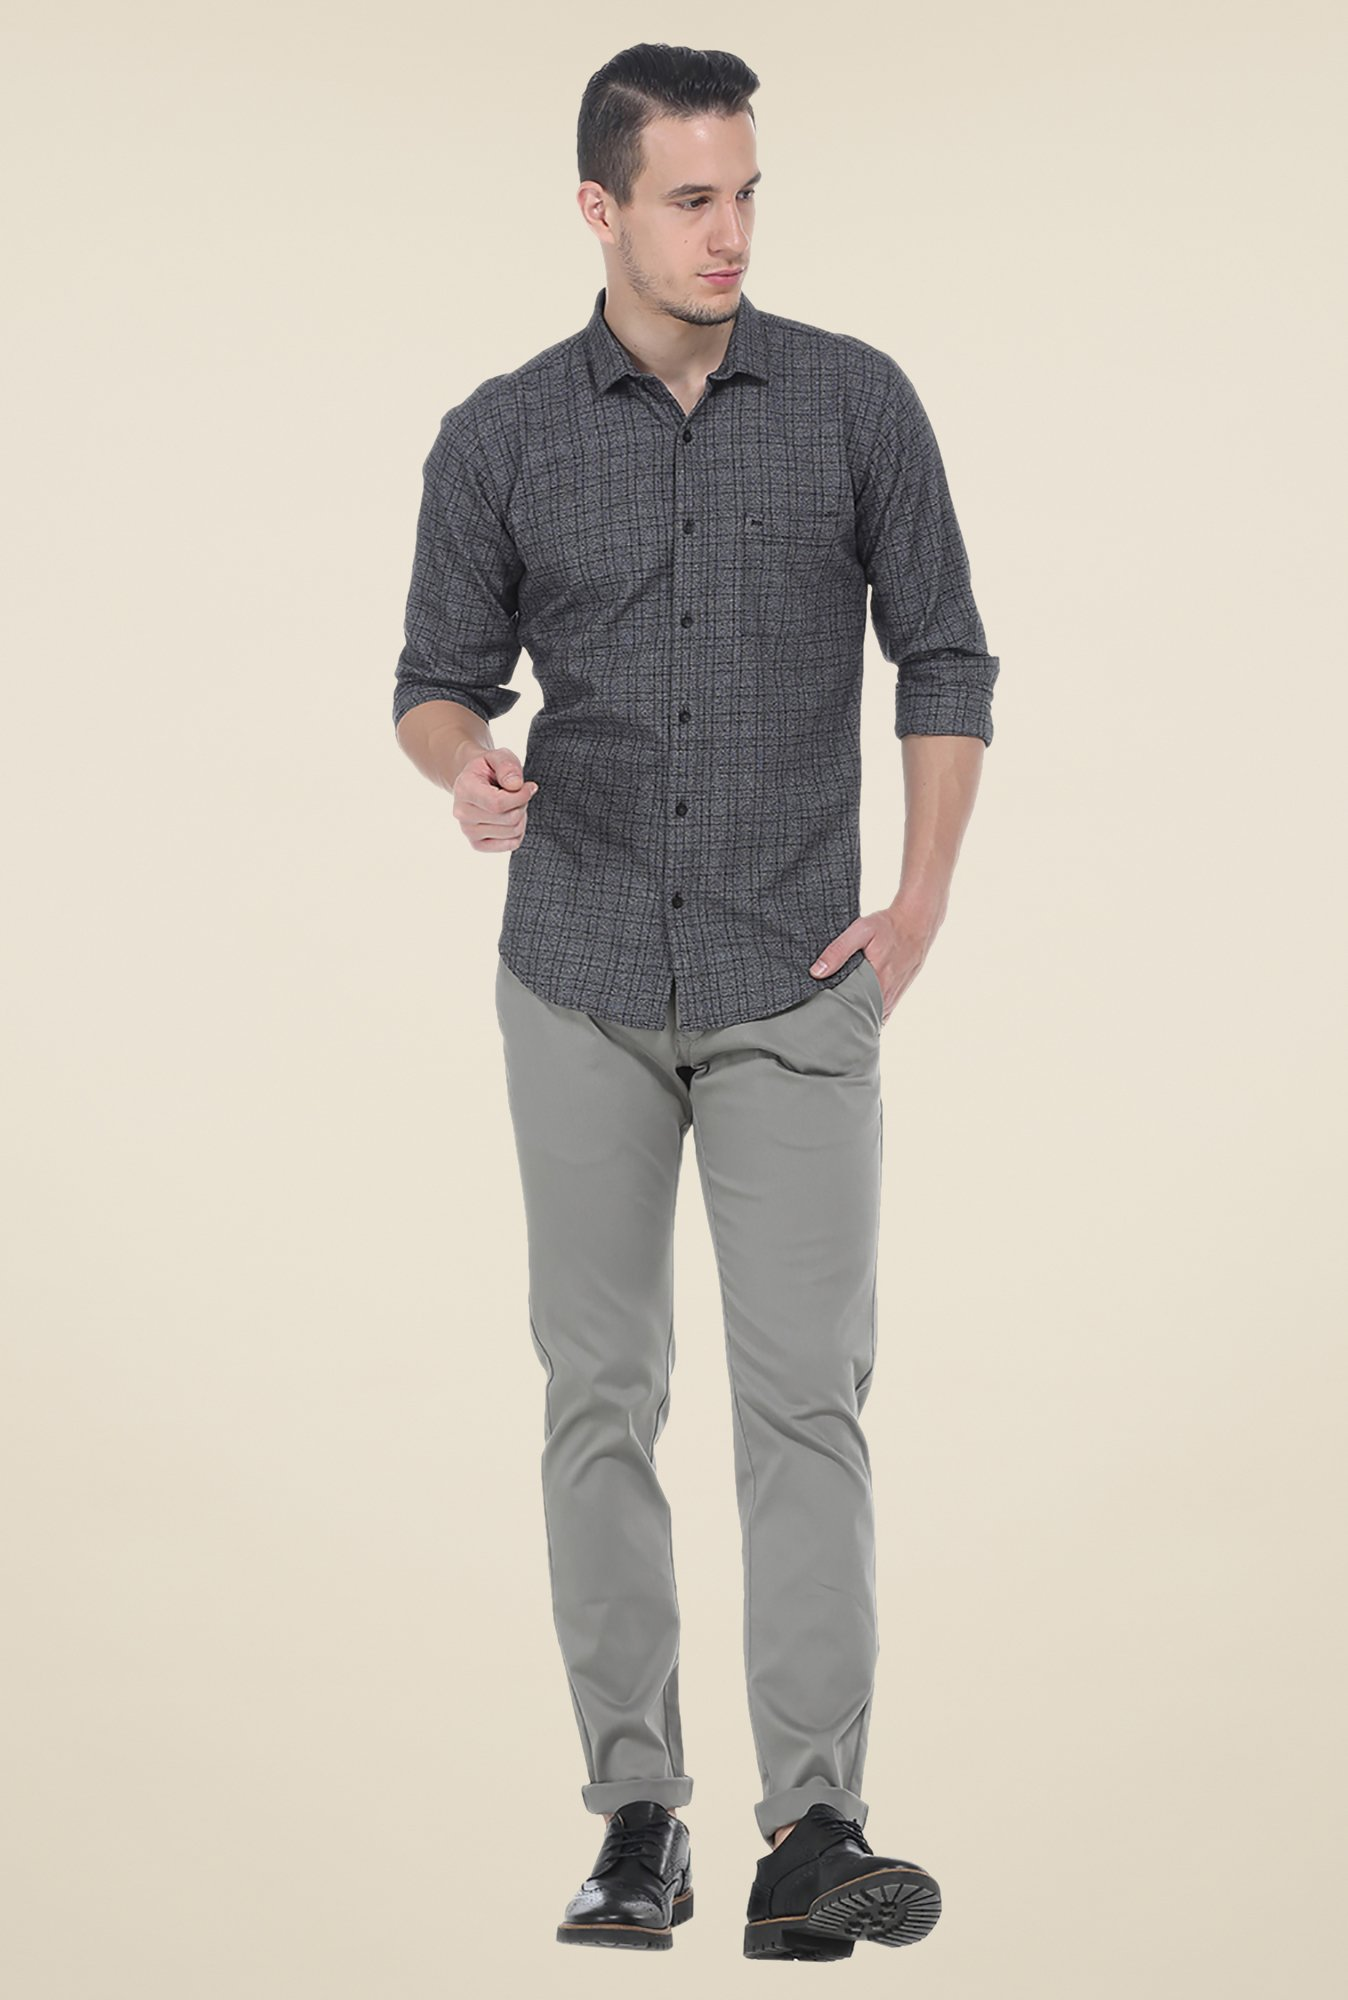 Basics Dark Grey Checks Shirt